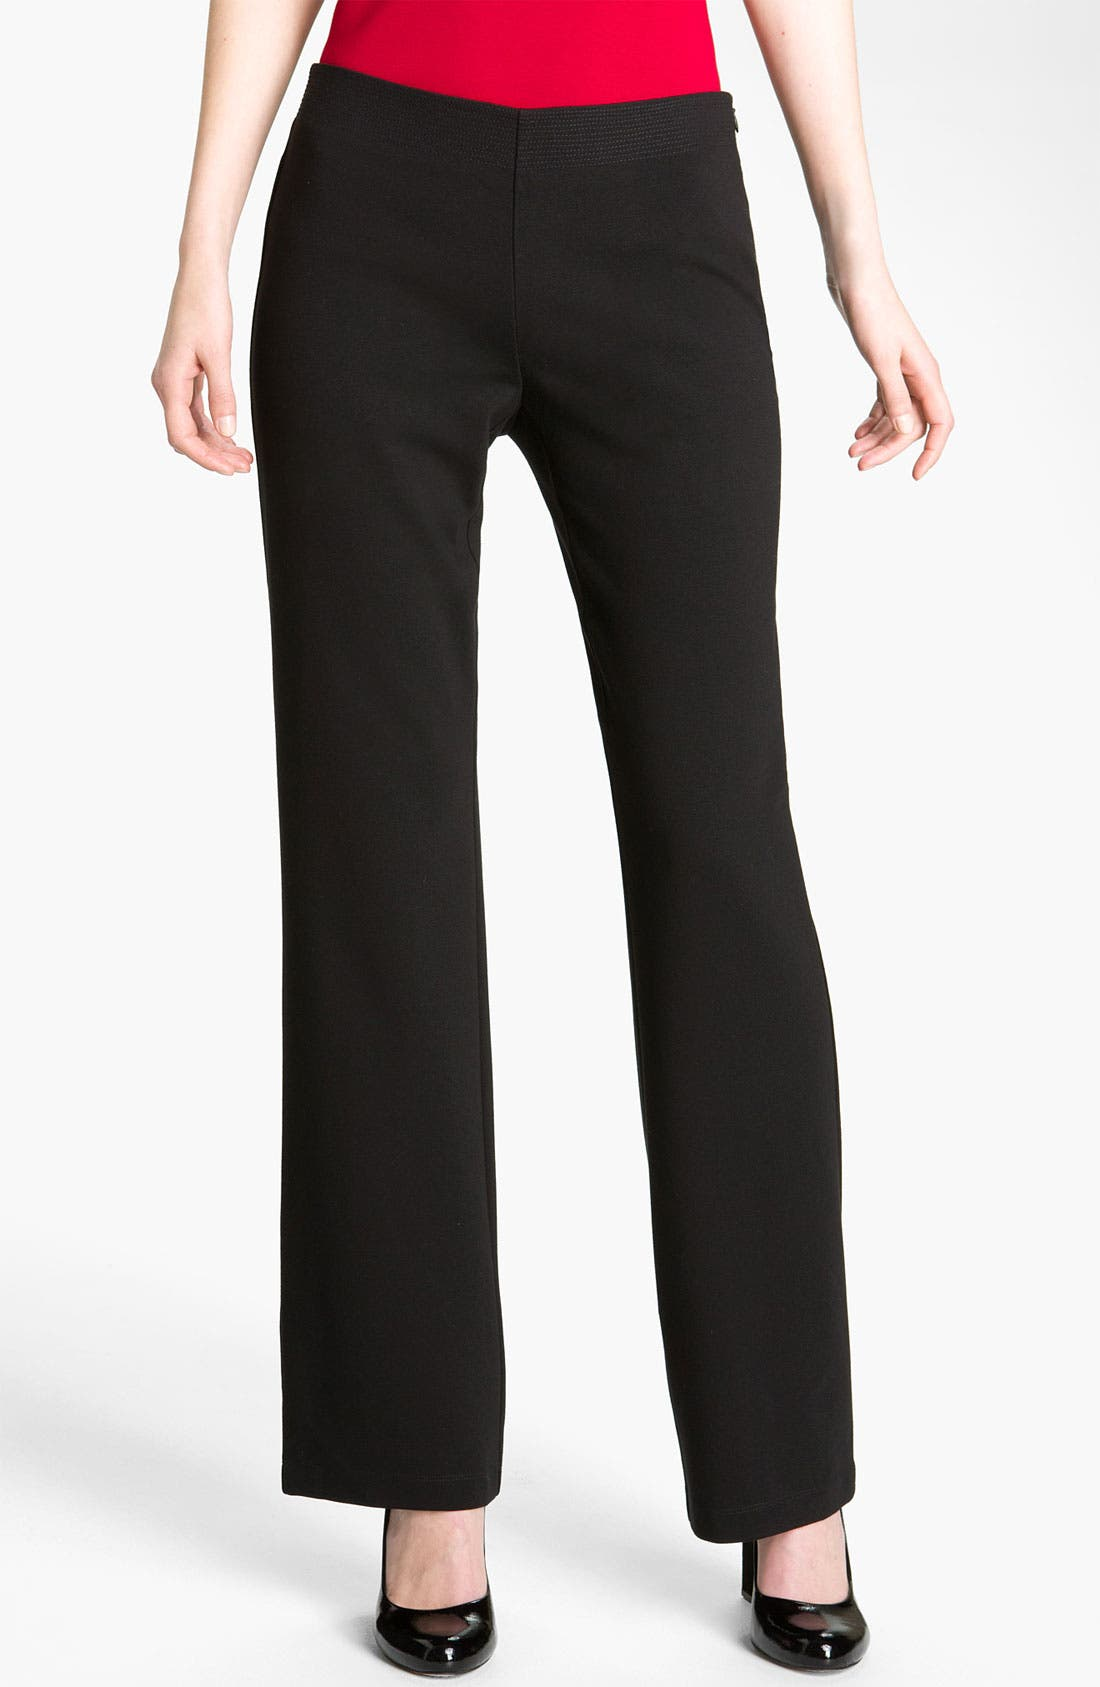 Alternate Image 1 Selected - Eileen Fisher 'Milano' Straight Leg Knit Pants